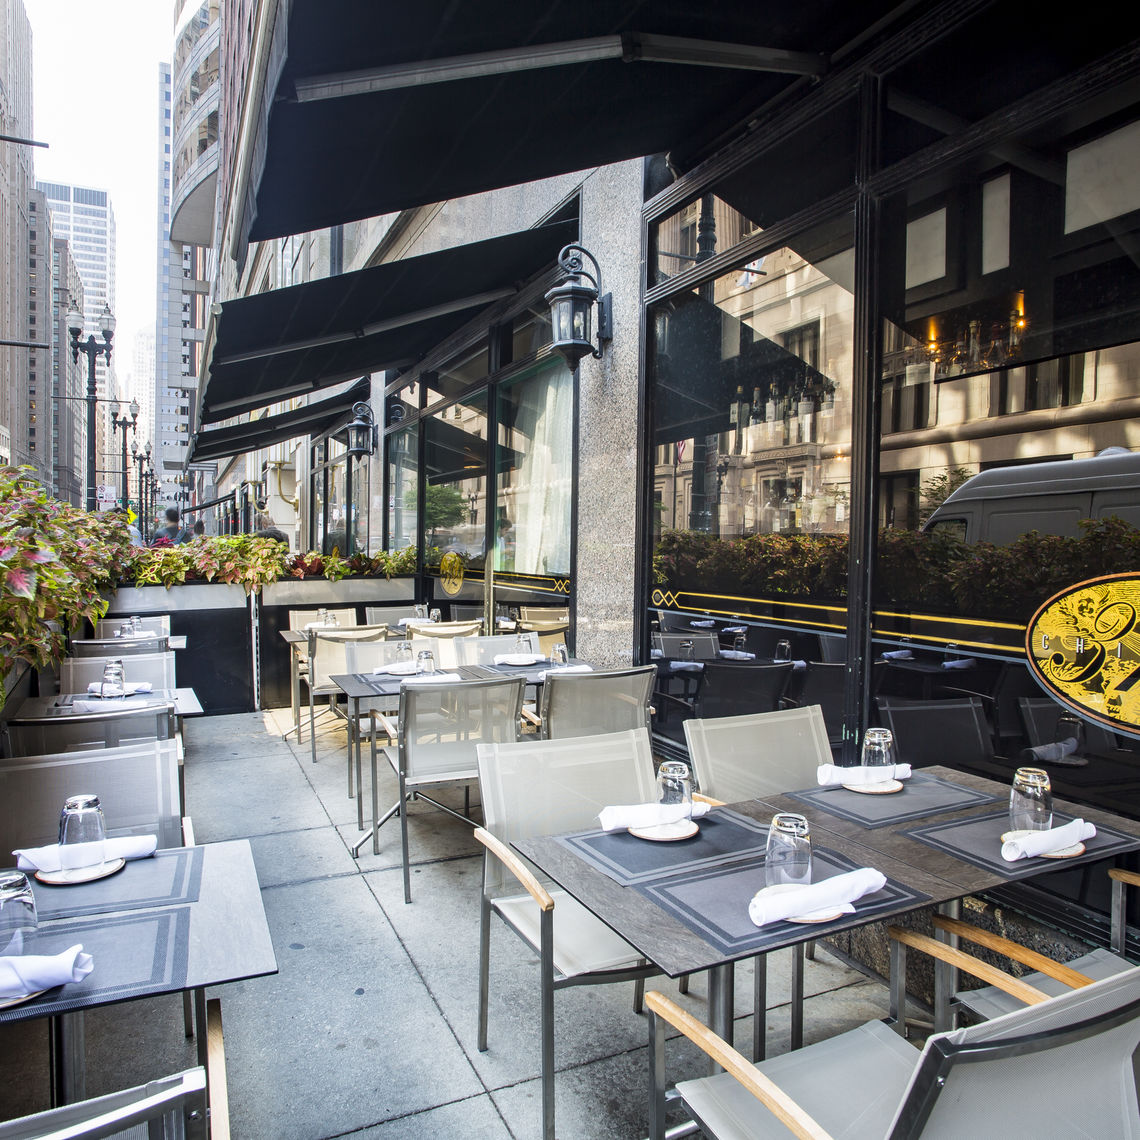 Photo #5 OUTDOOR PATIO at 312 Chicago